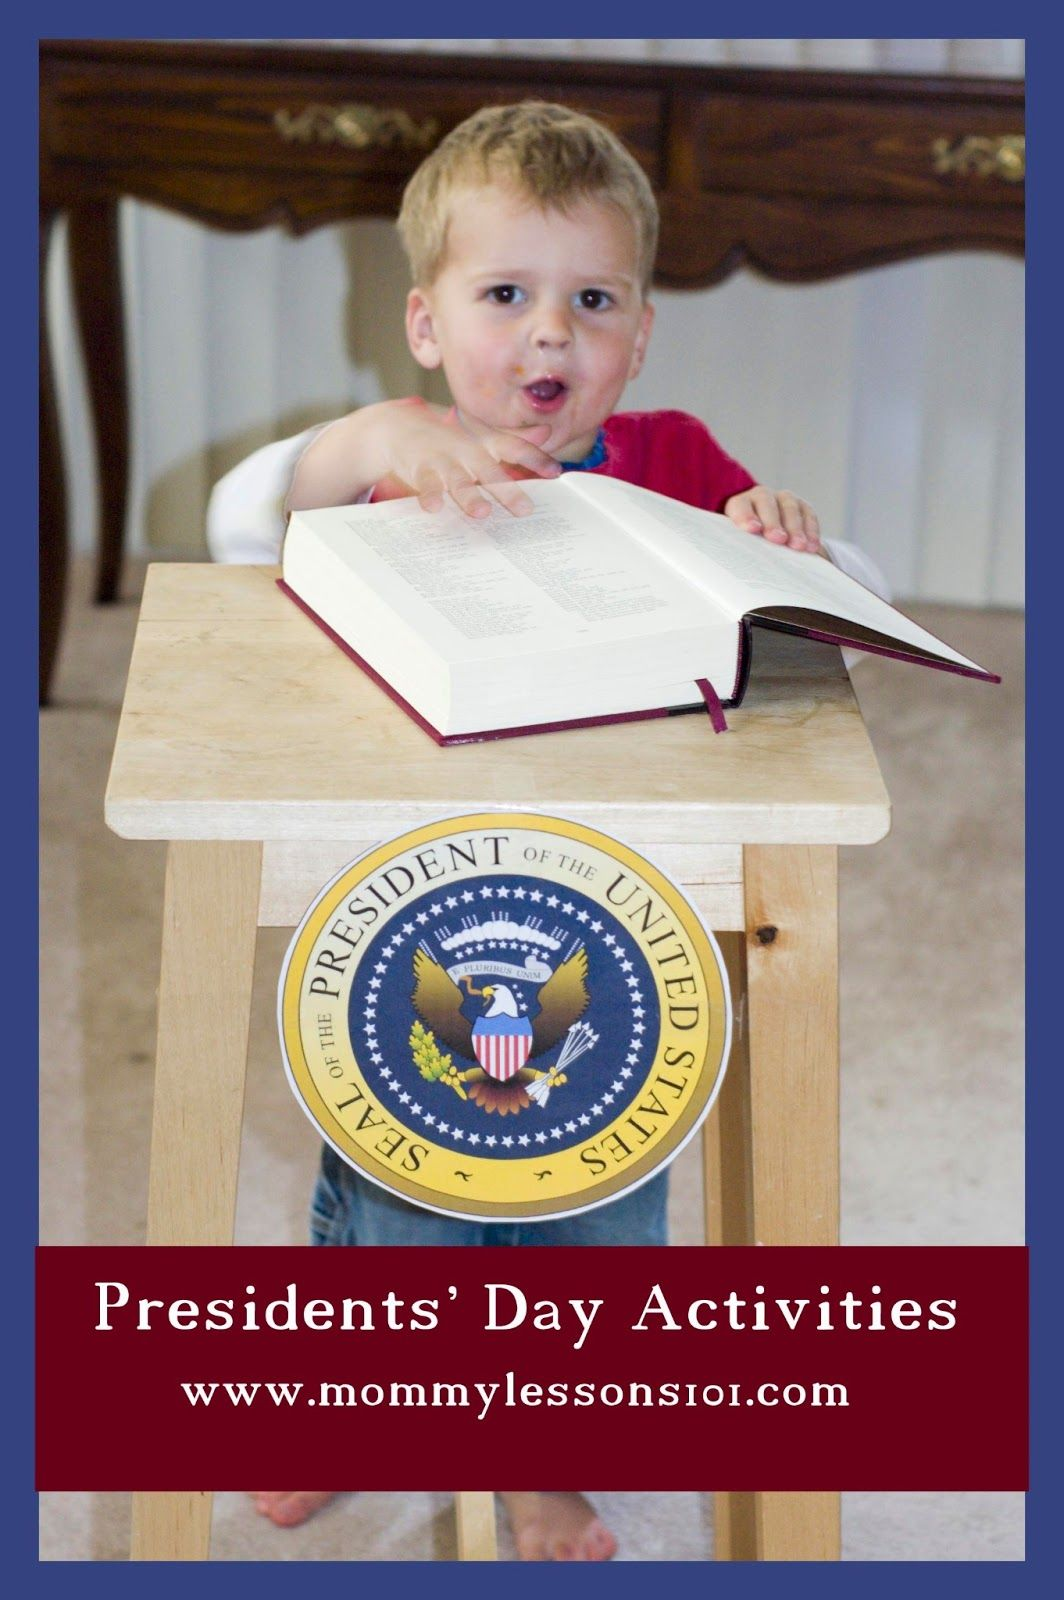 Mommy Lessons 101 Presidents Day Activities And Books For Kids